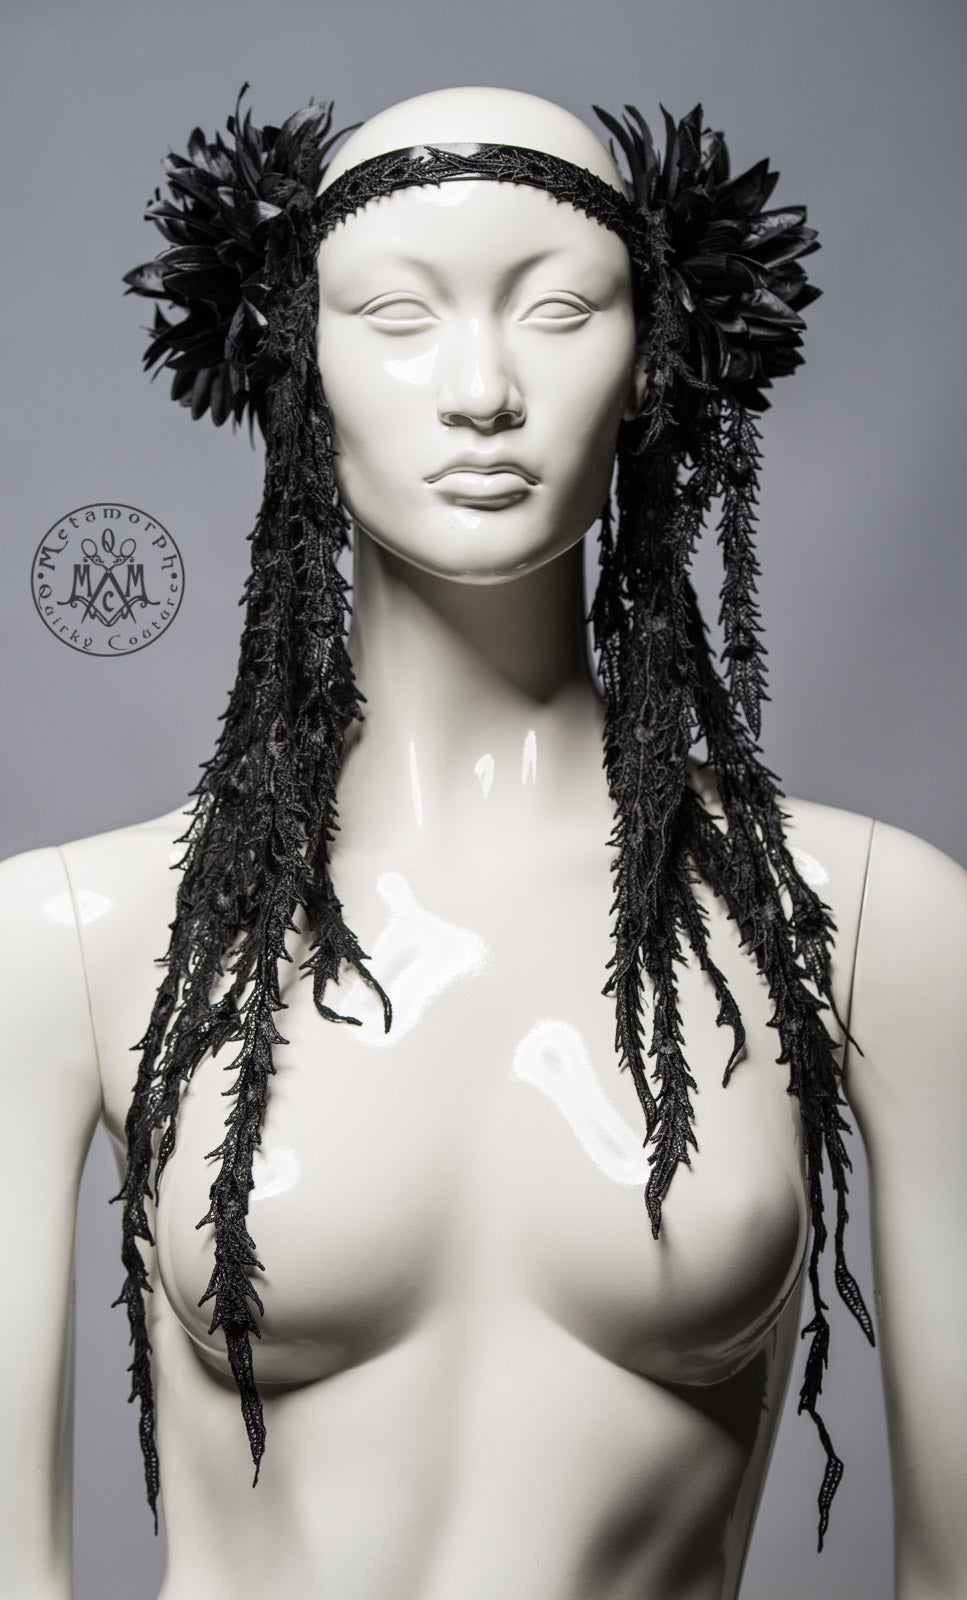 Black tribal fusion headdress / Flower and lace fringe headpiece / Leather headband with opulent black flowers / Gothic fusion headdress